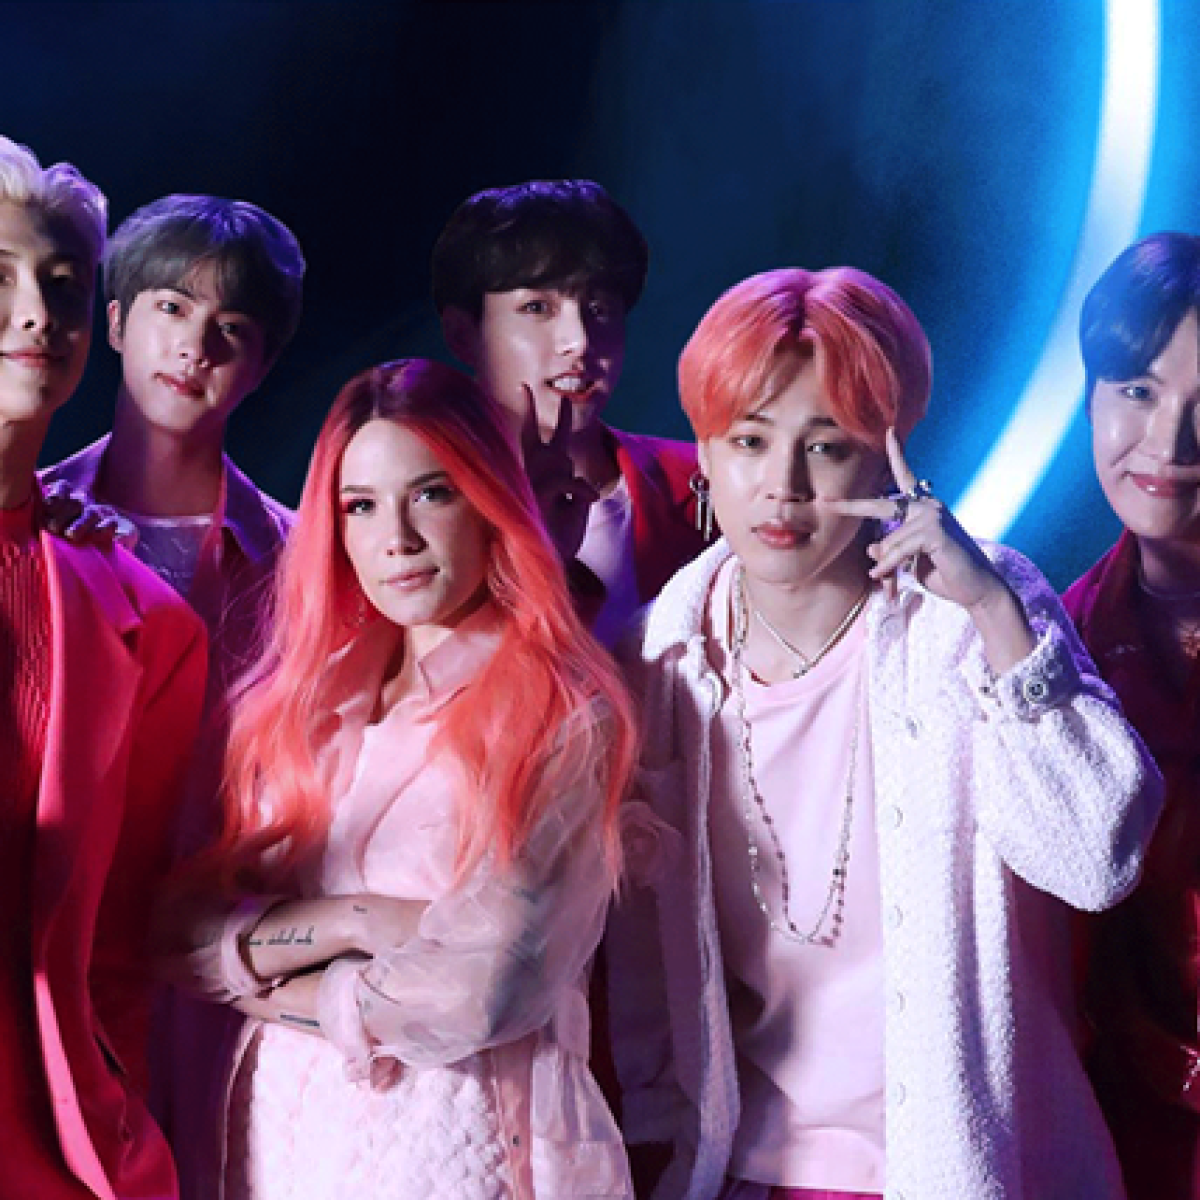 BTS song 'Boy With Luv' smashes YouTube record; fastest K-pop music video to cross 750 million views